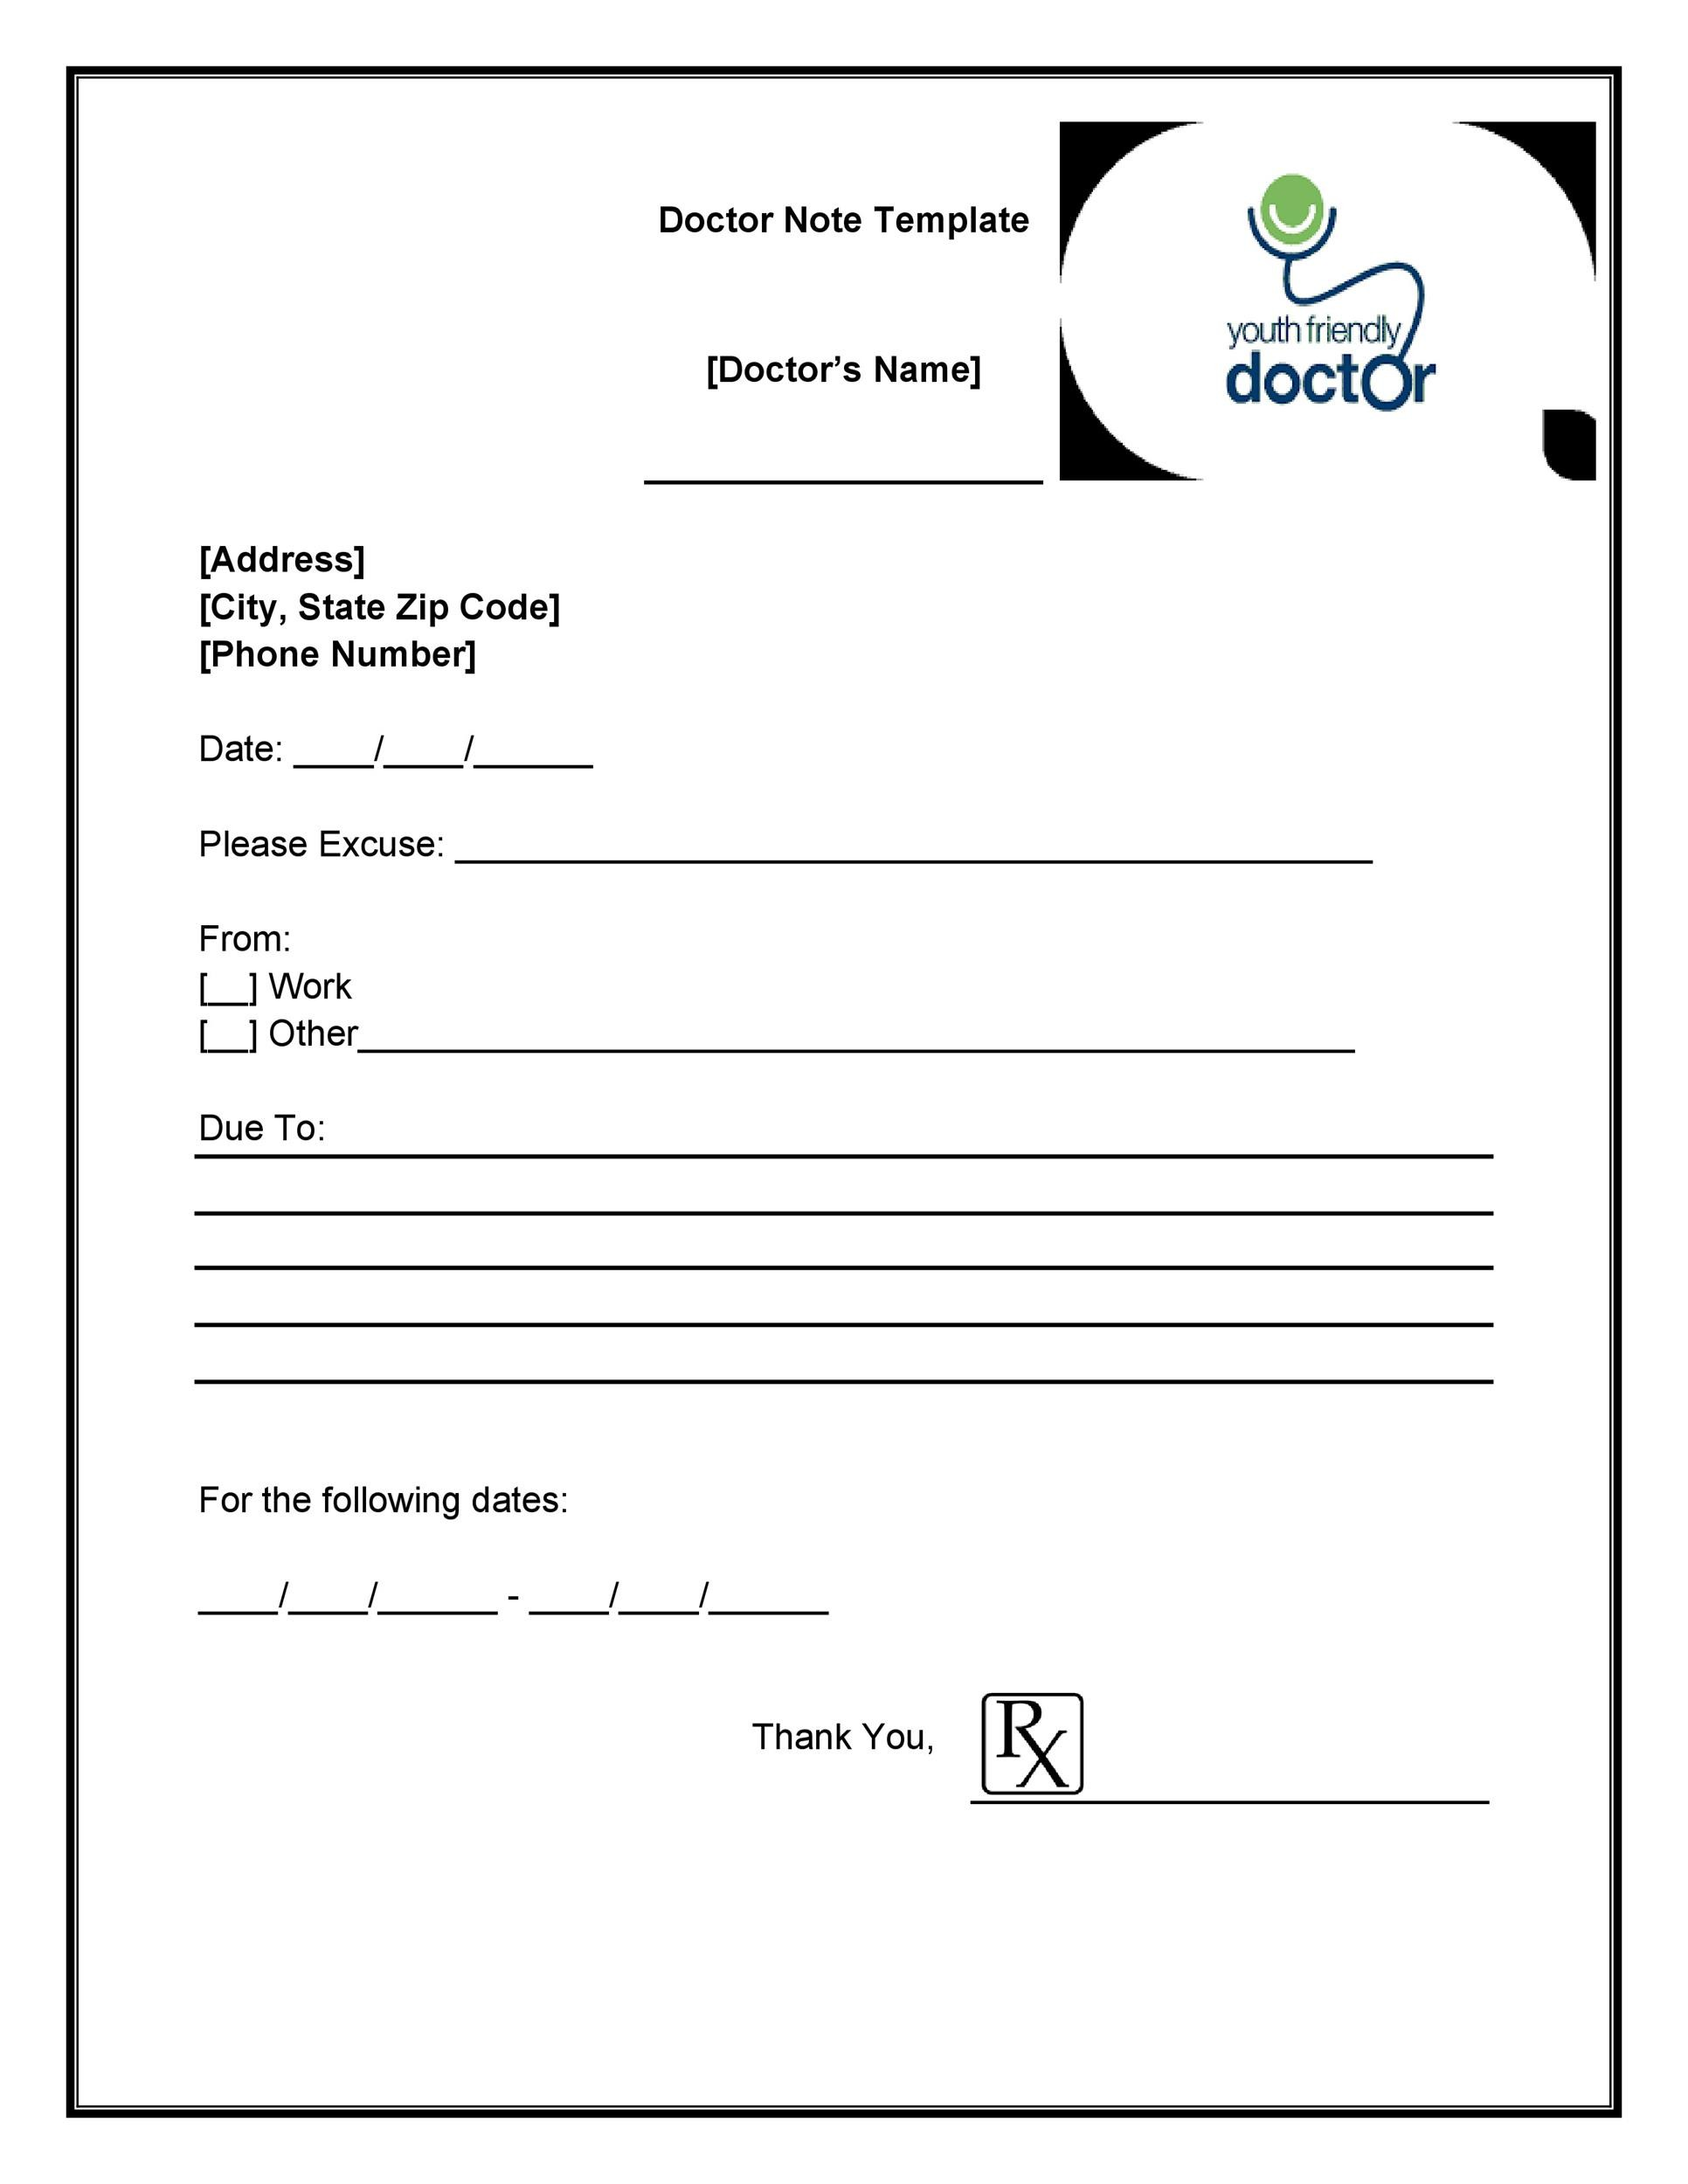 Bonus Doctor Notes Template 03